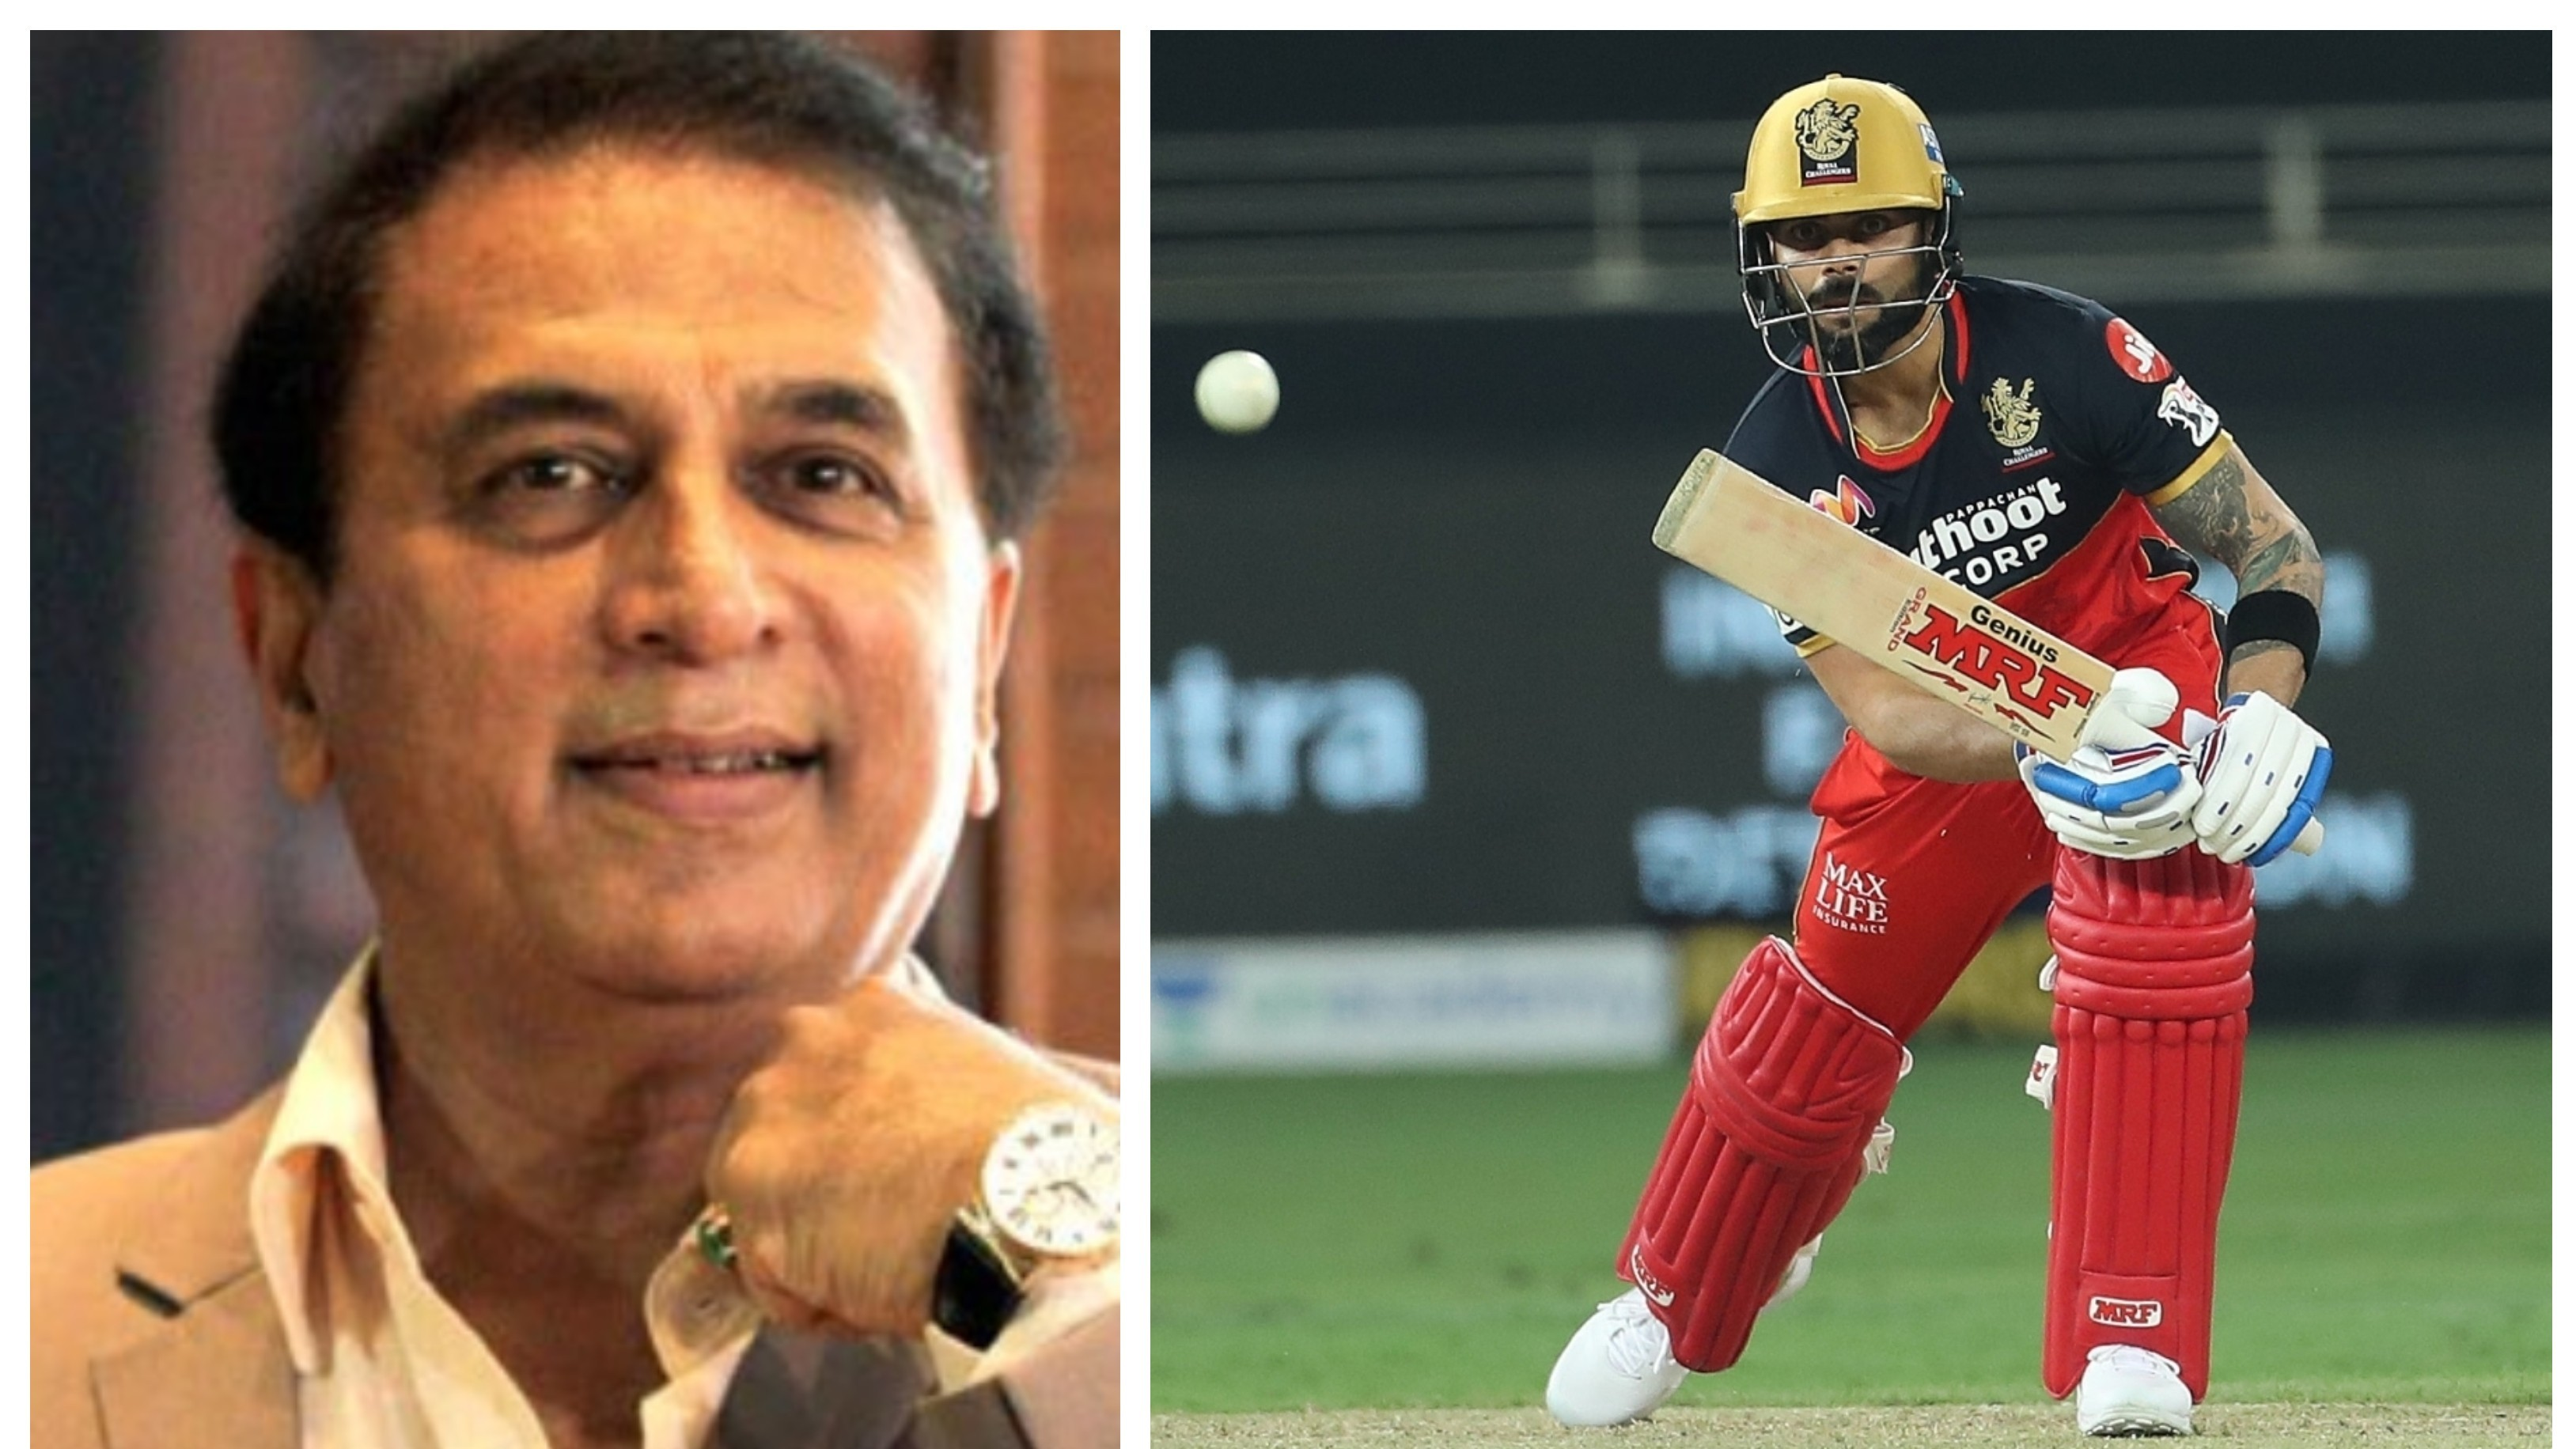 IPL 2020: Gavaskar reflects on RCB's campaign, says Kohli didn't match his own high standards with bat